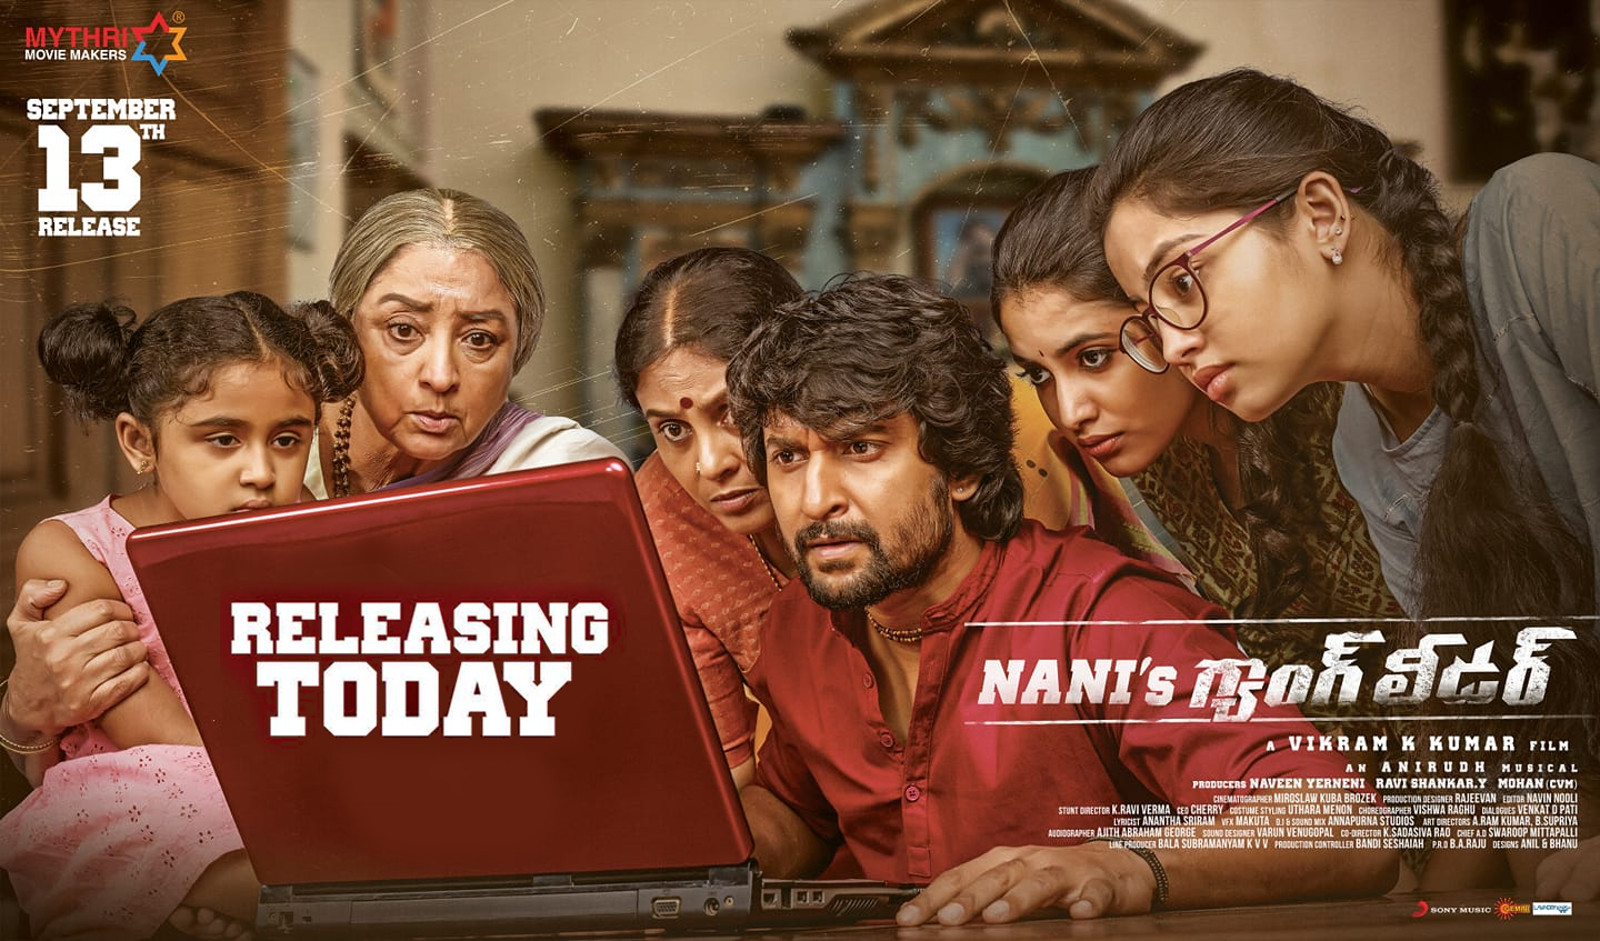 Nani's Gang Leader Movie Release Today Poster HD